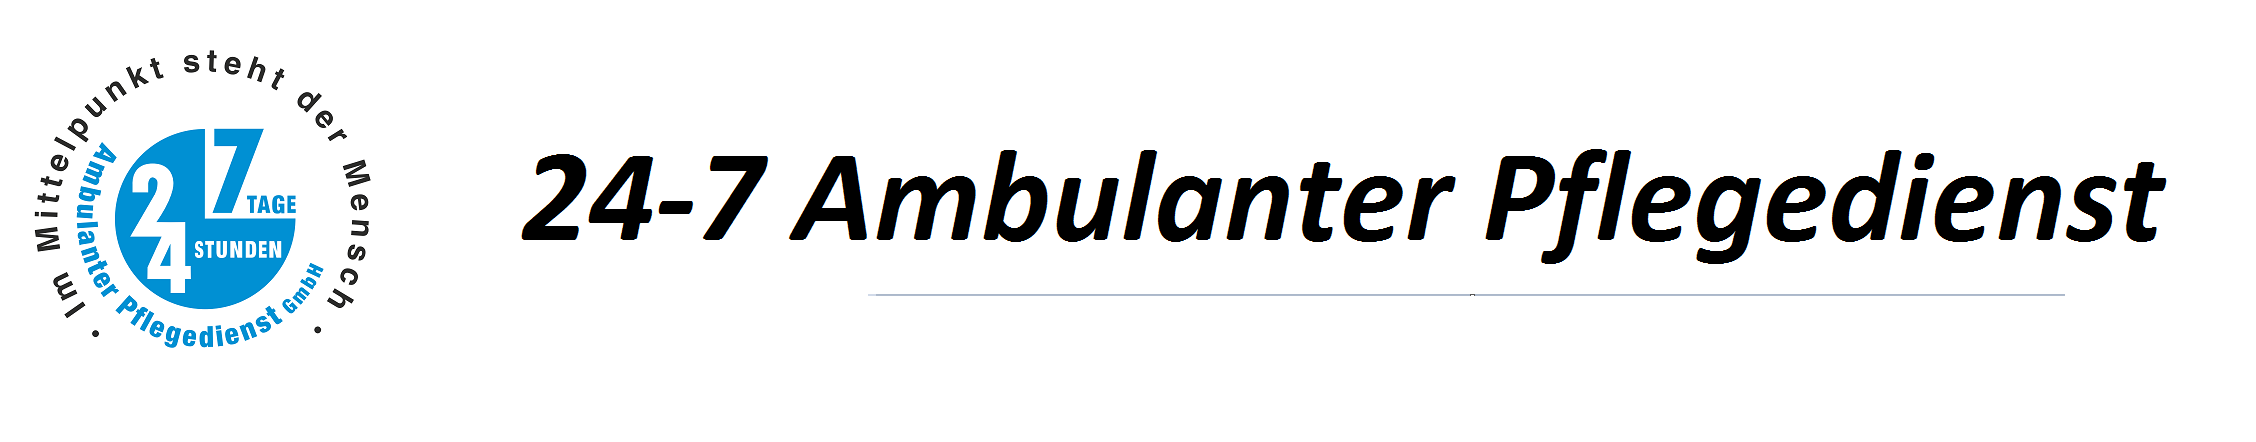 24-7 Ambulanter Pflegedienst